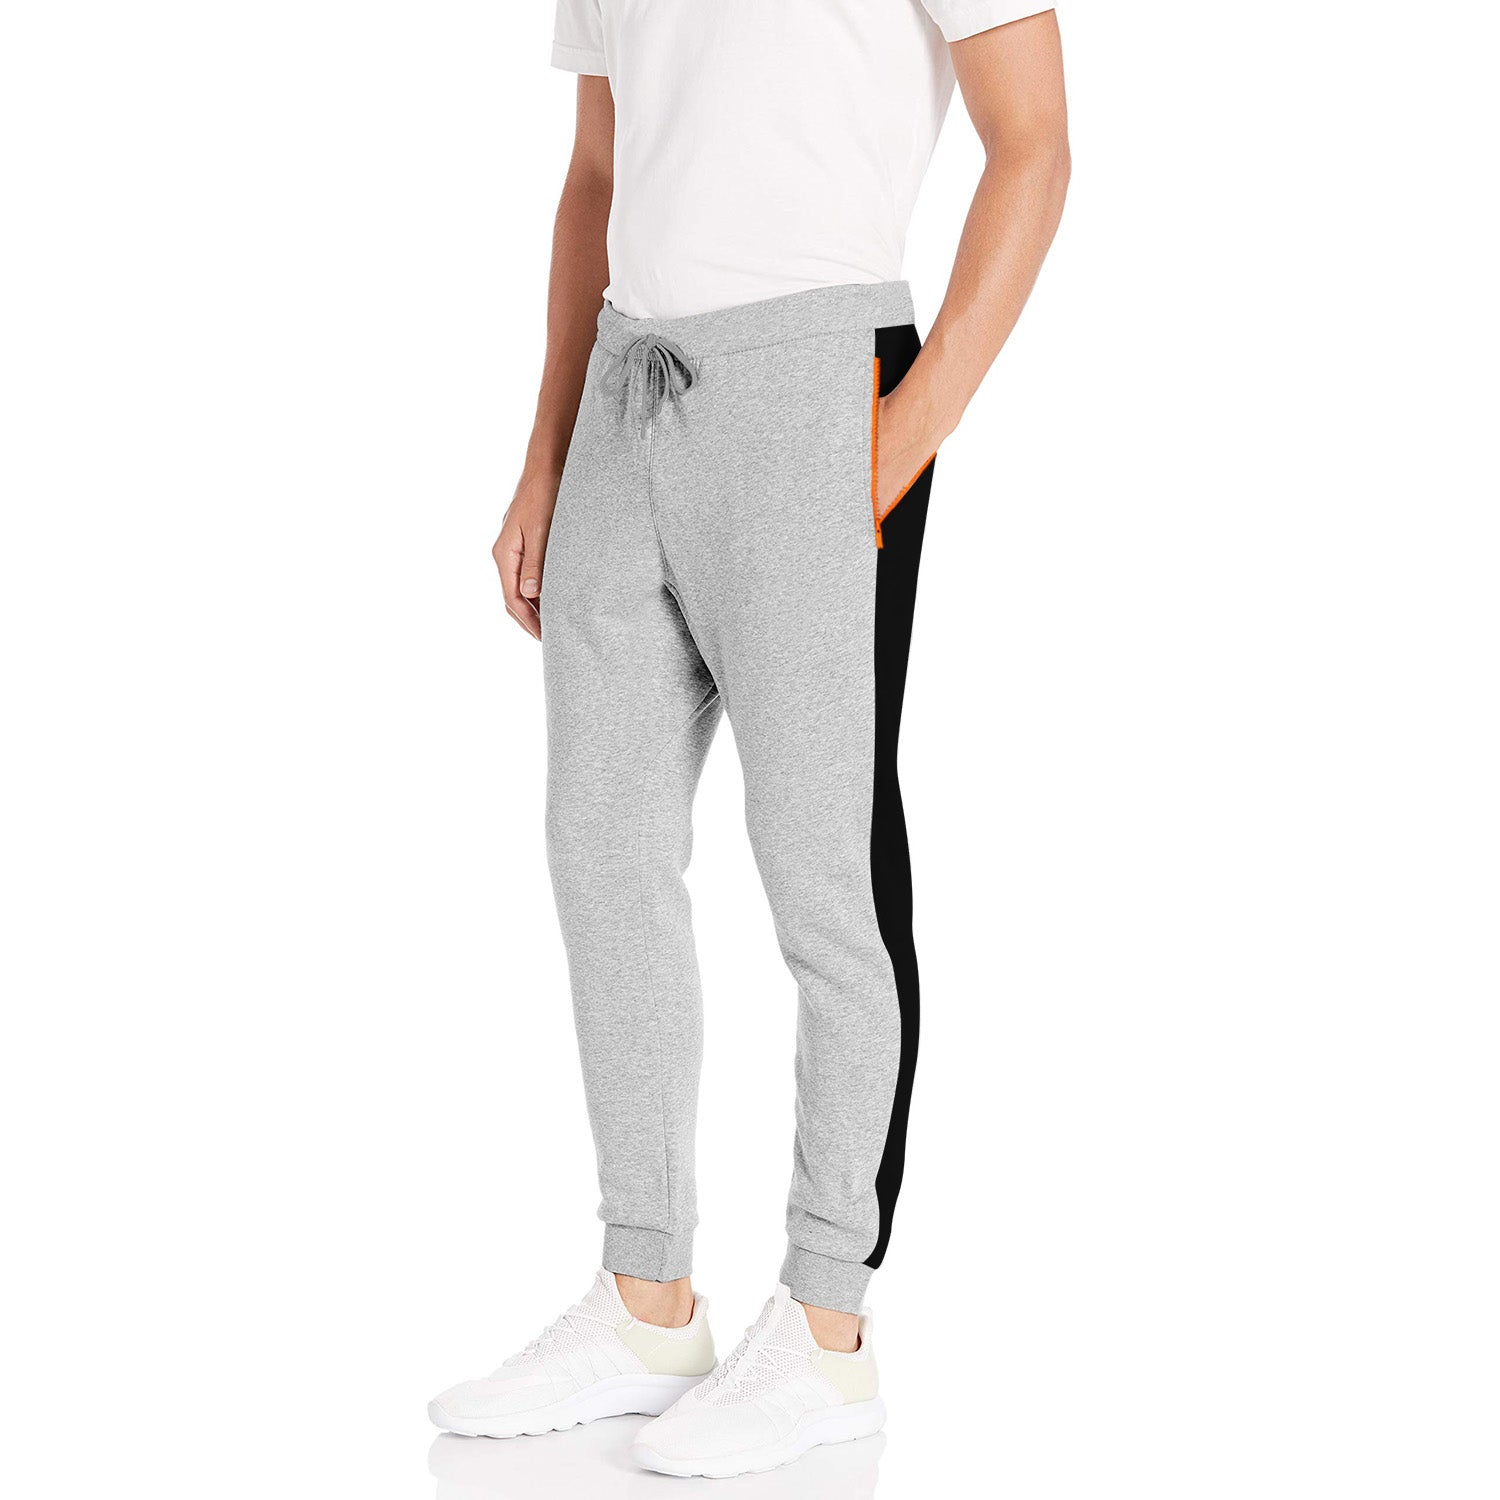 Diesel Summer Slim Fit Panel Trouser For Men-Grey Melange & Black Stripe-BE11849